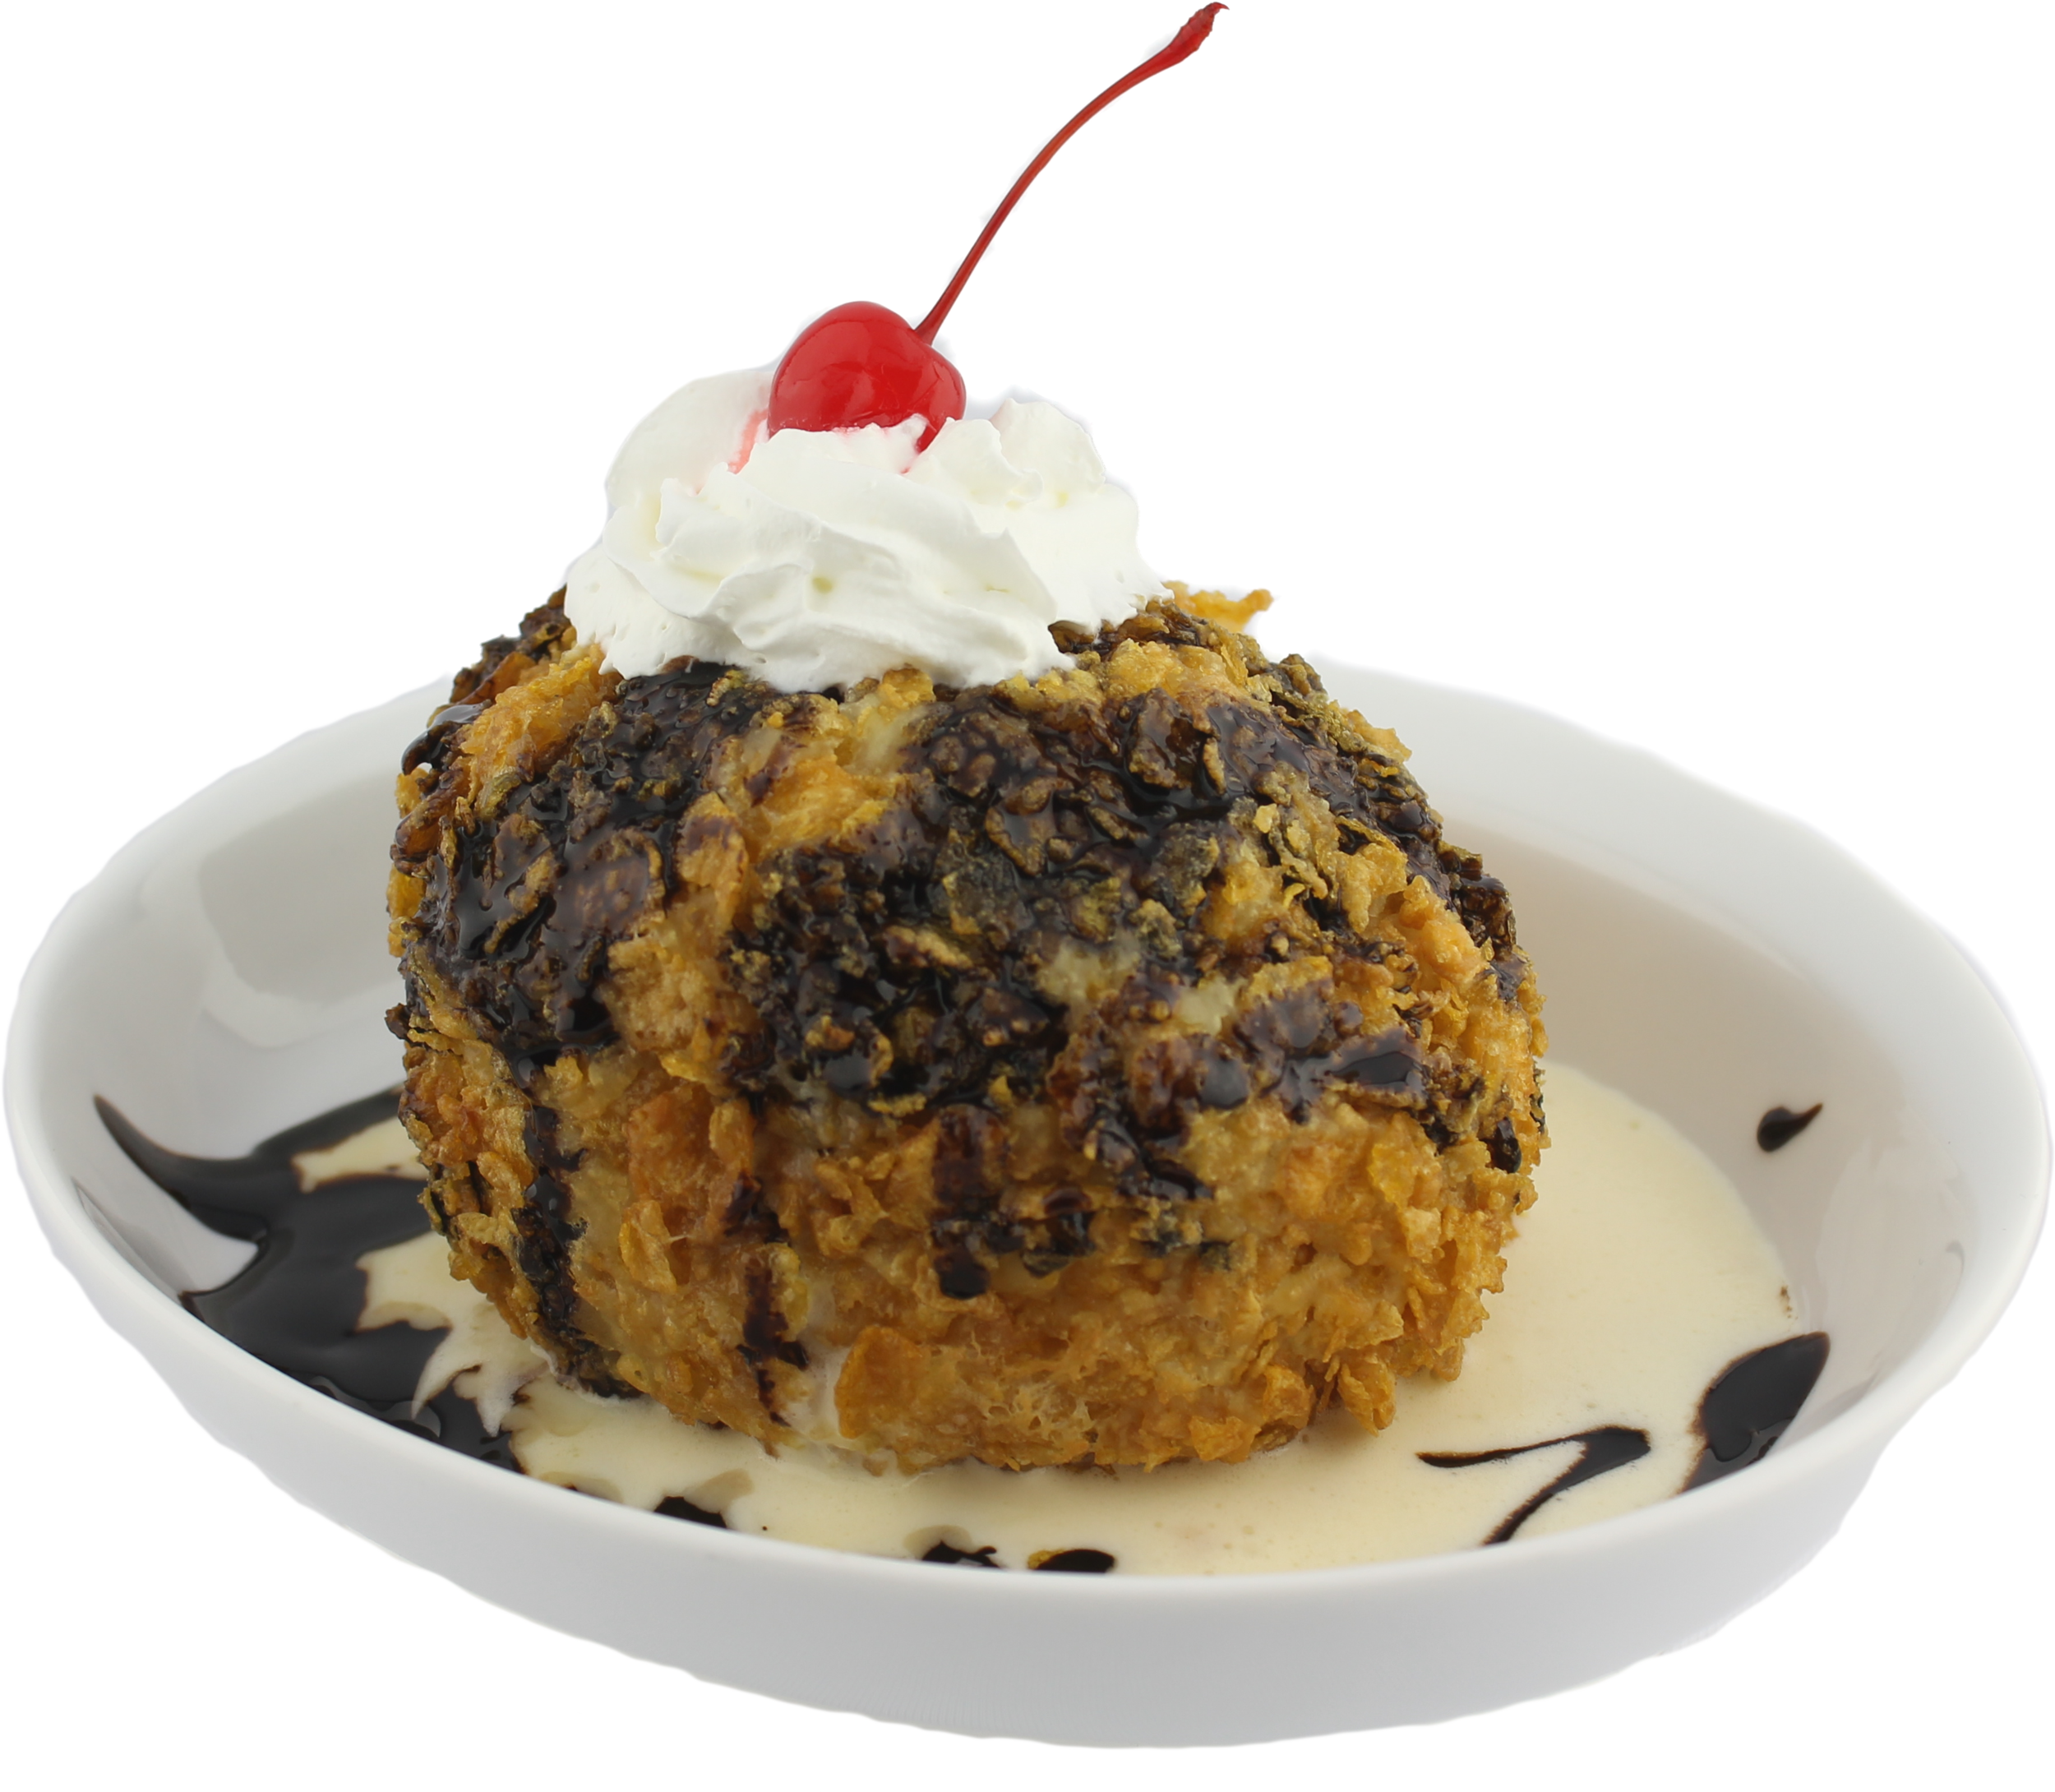 IMG_0659 Fried Ice Cream.png